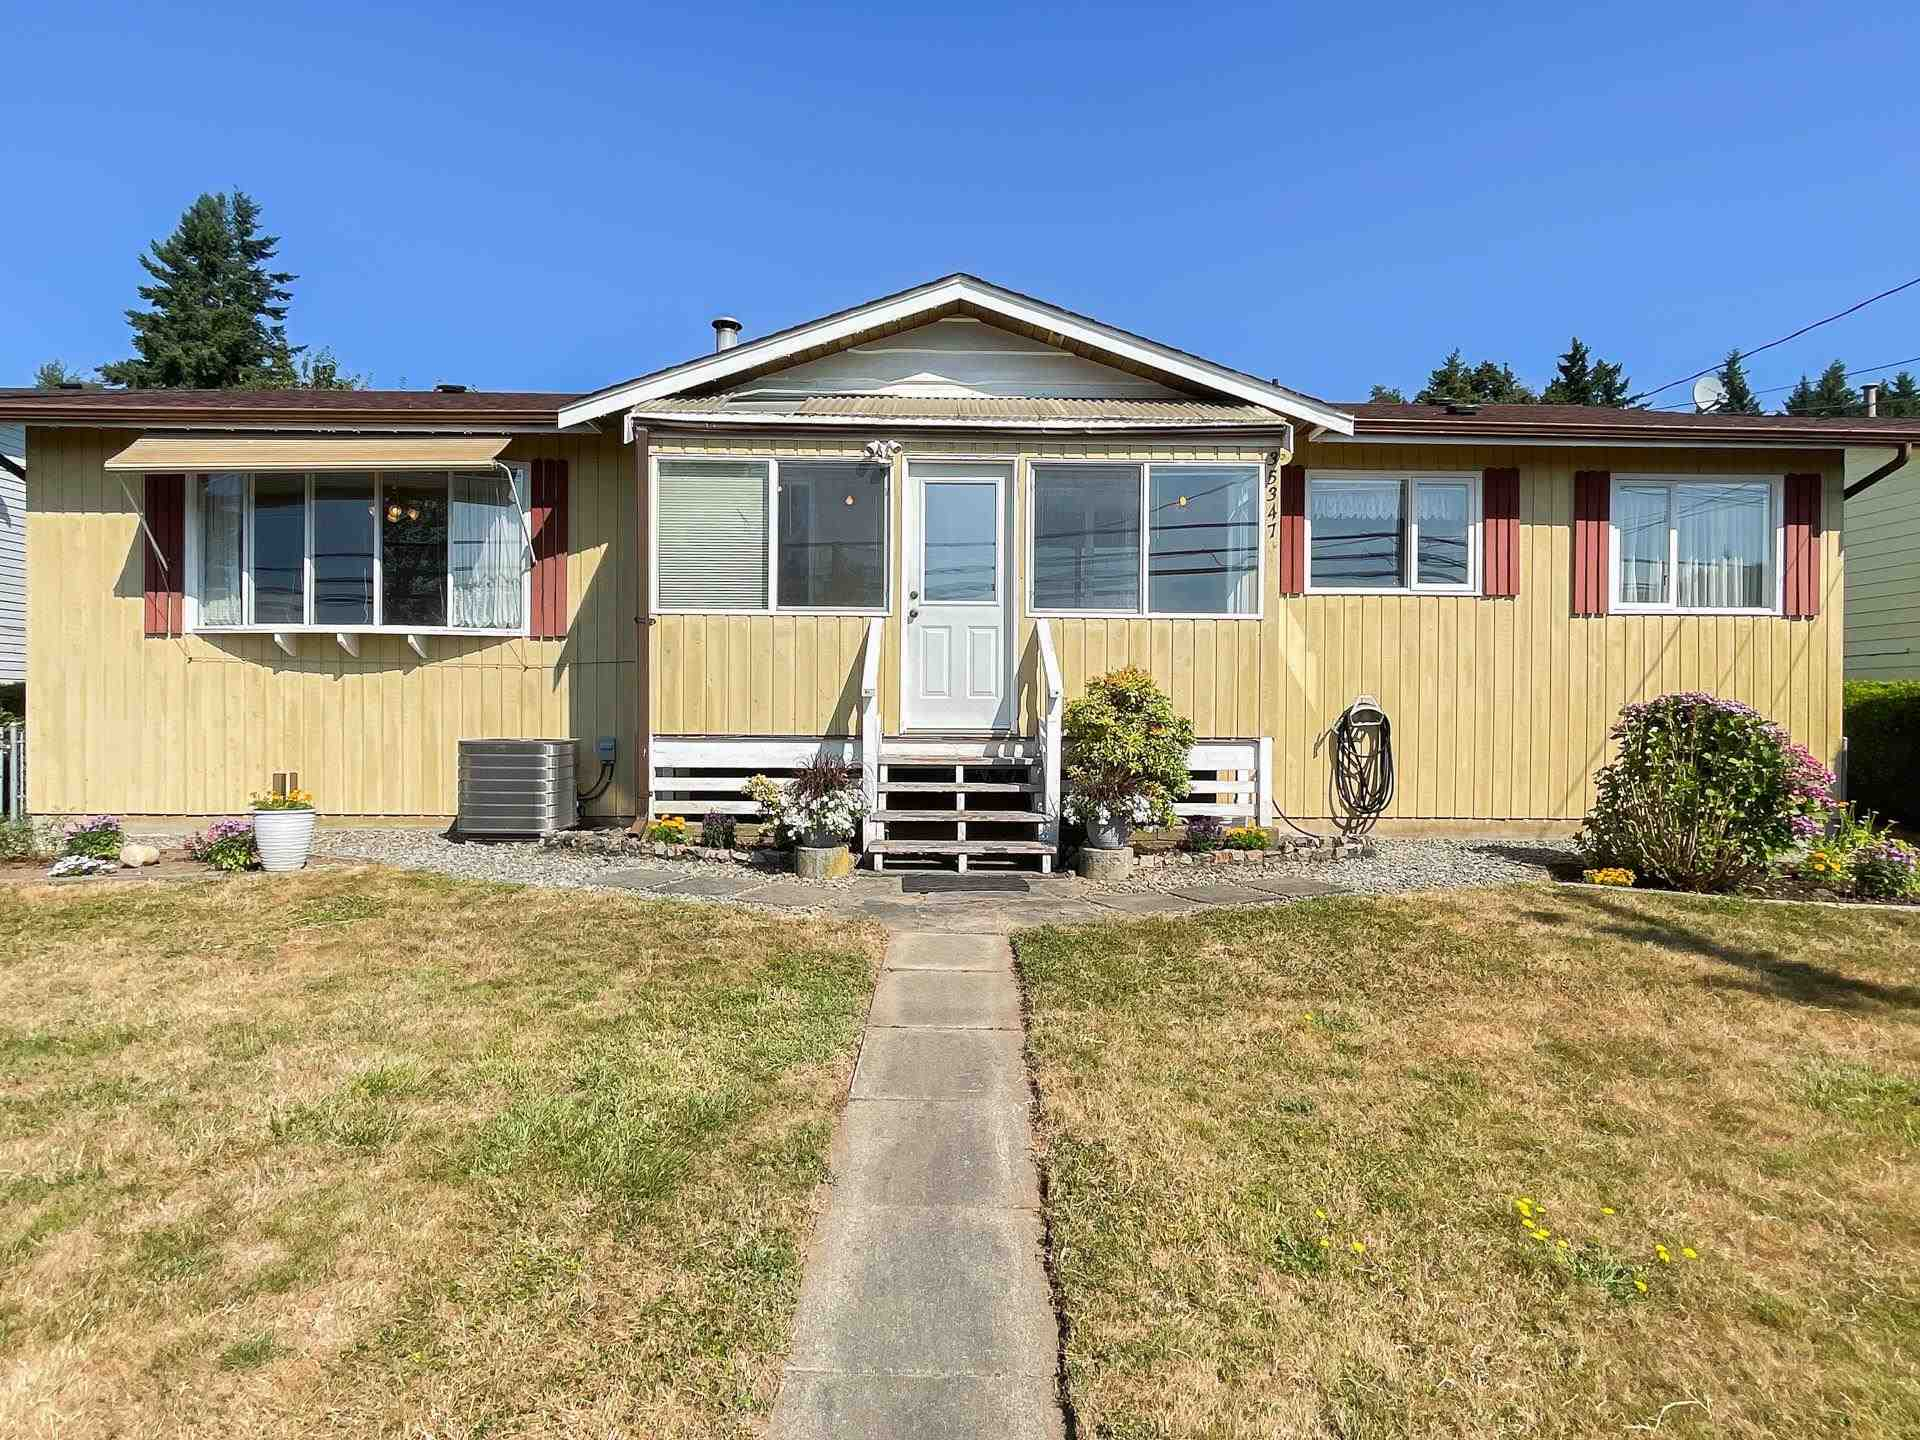 35347 DELAIR ROAD - Abbotsford East House/Single Family for sale, 3 Bedrooms (R2604885) - #1